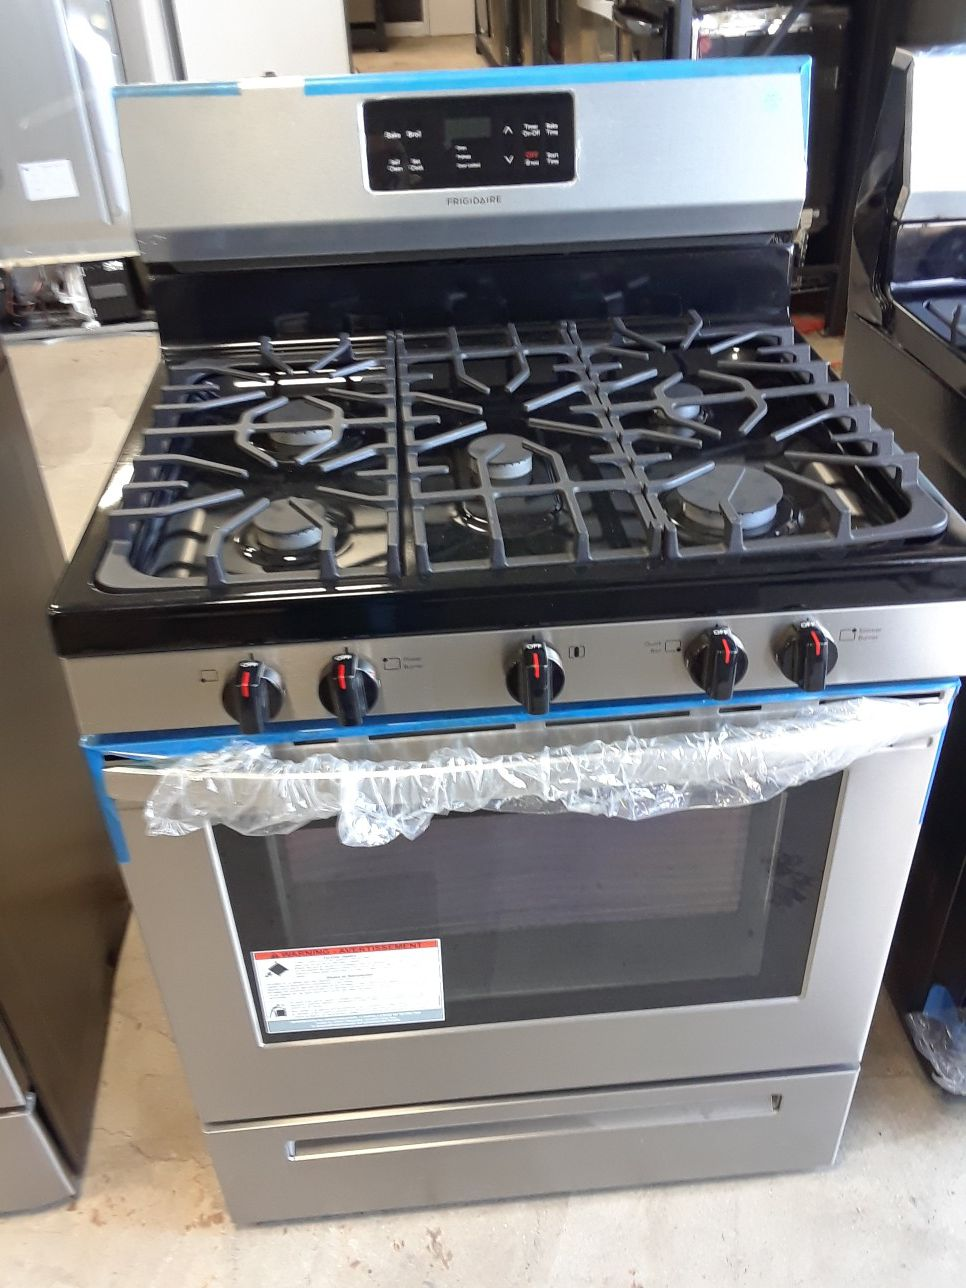 OPEN BOX STOVE STAINLESS STEEL